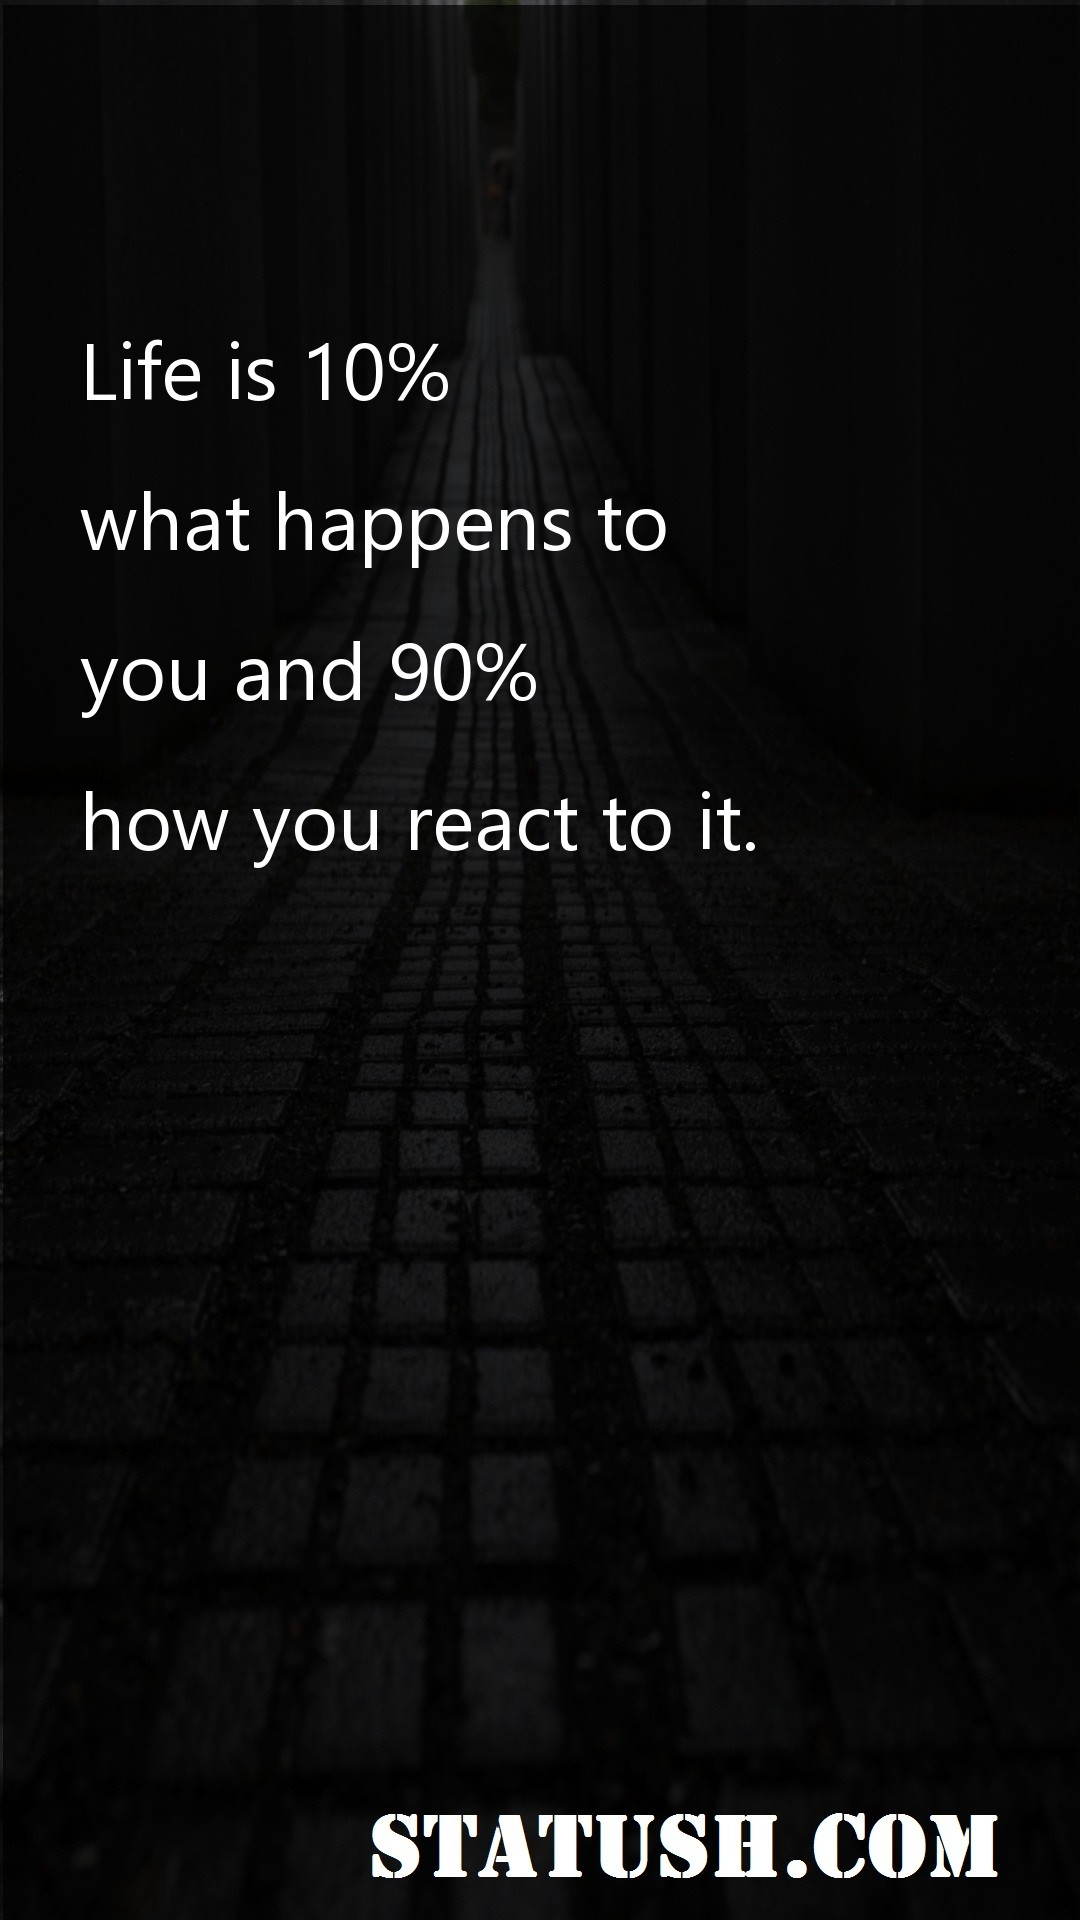 Life is 10% what happens to